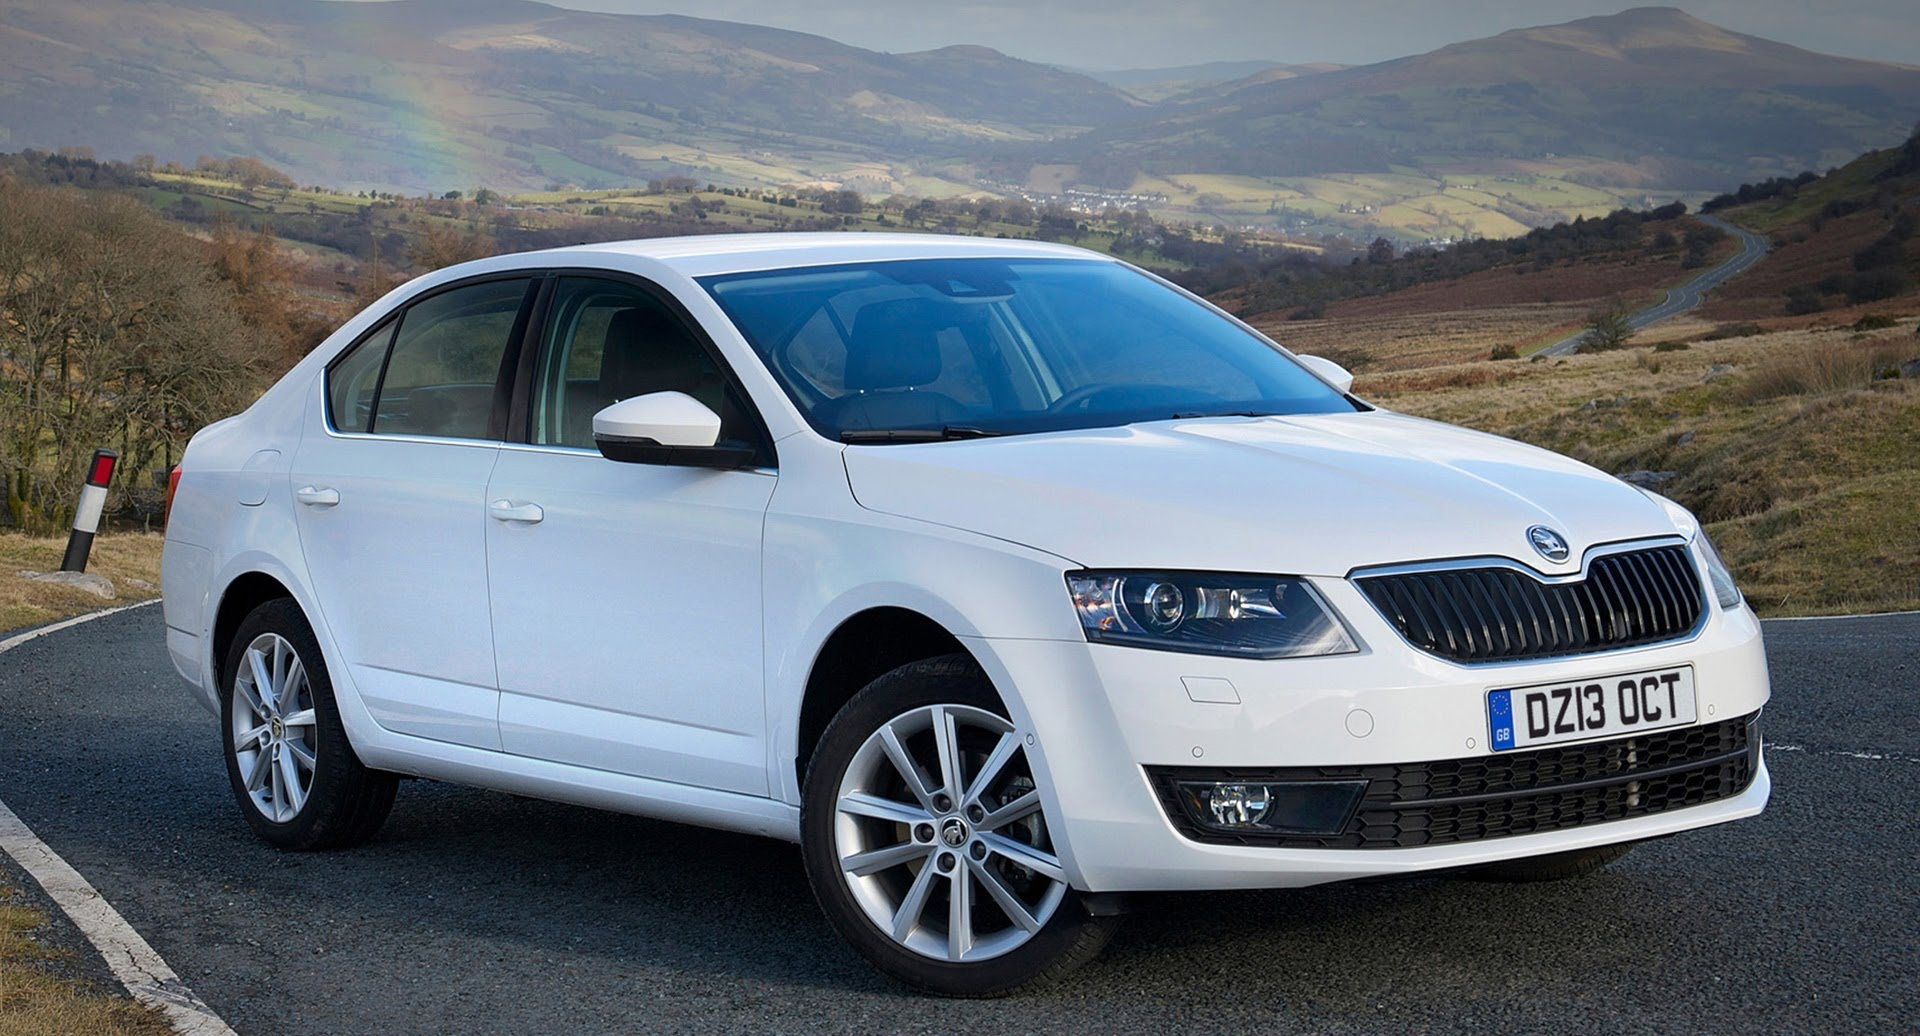 Skoda Octavia A7 HQ wallpapers